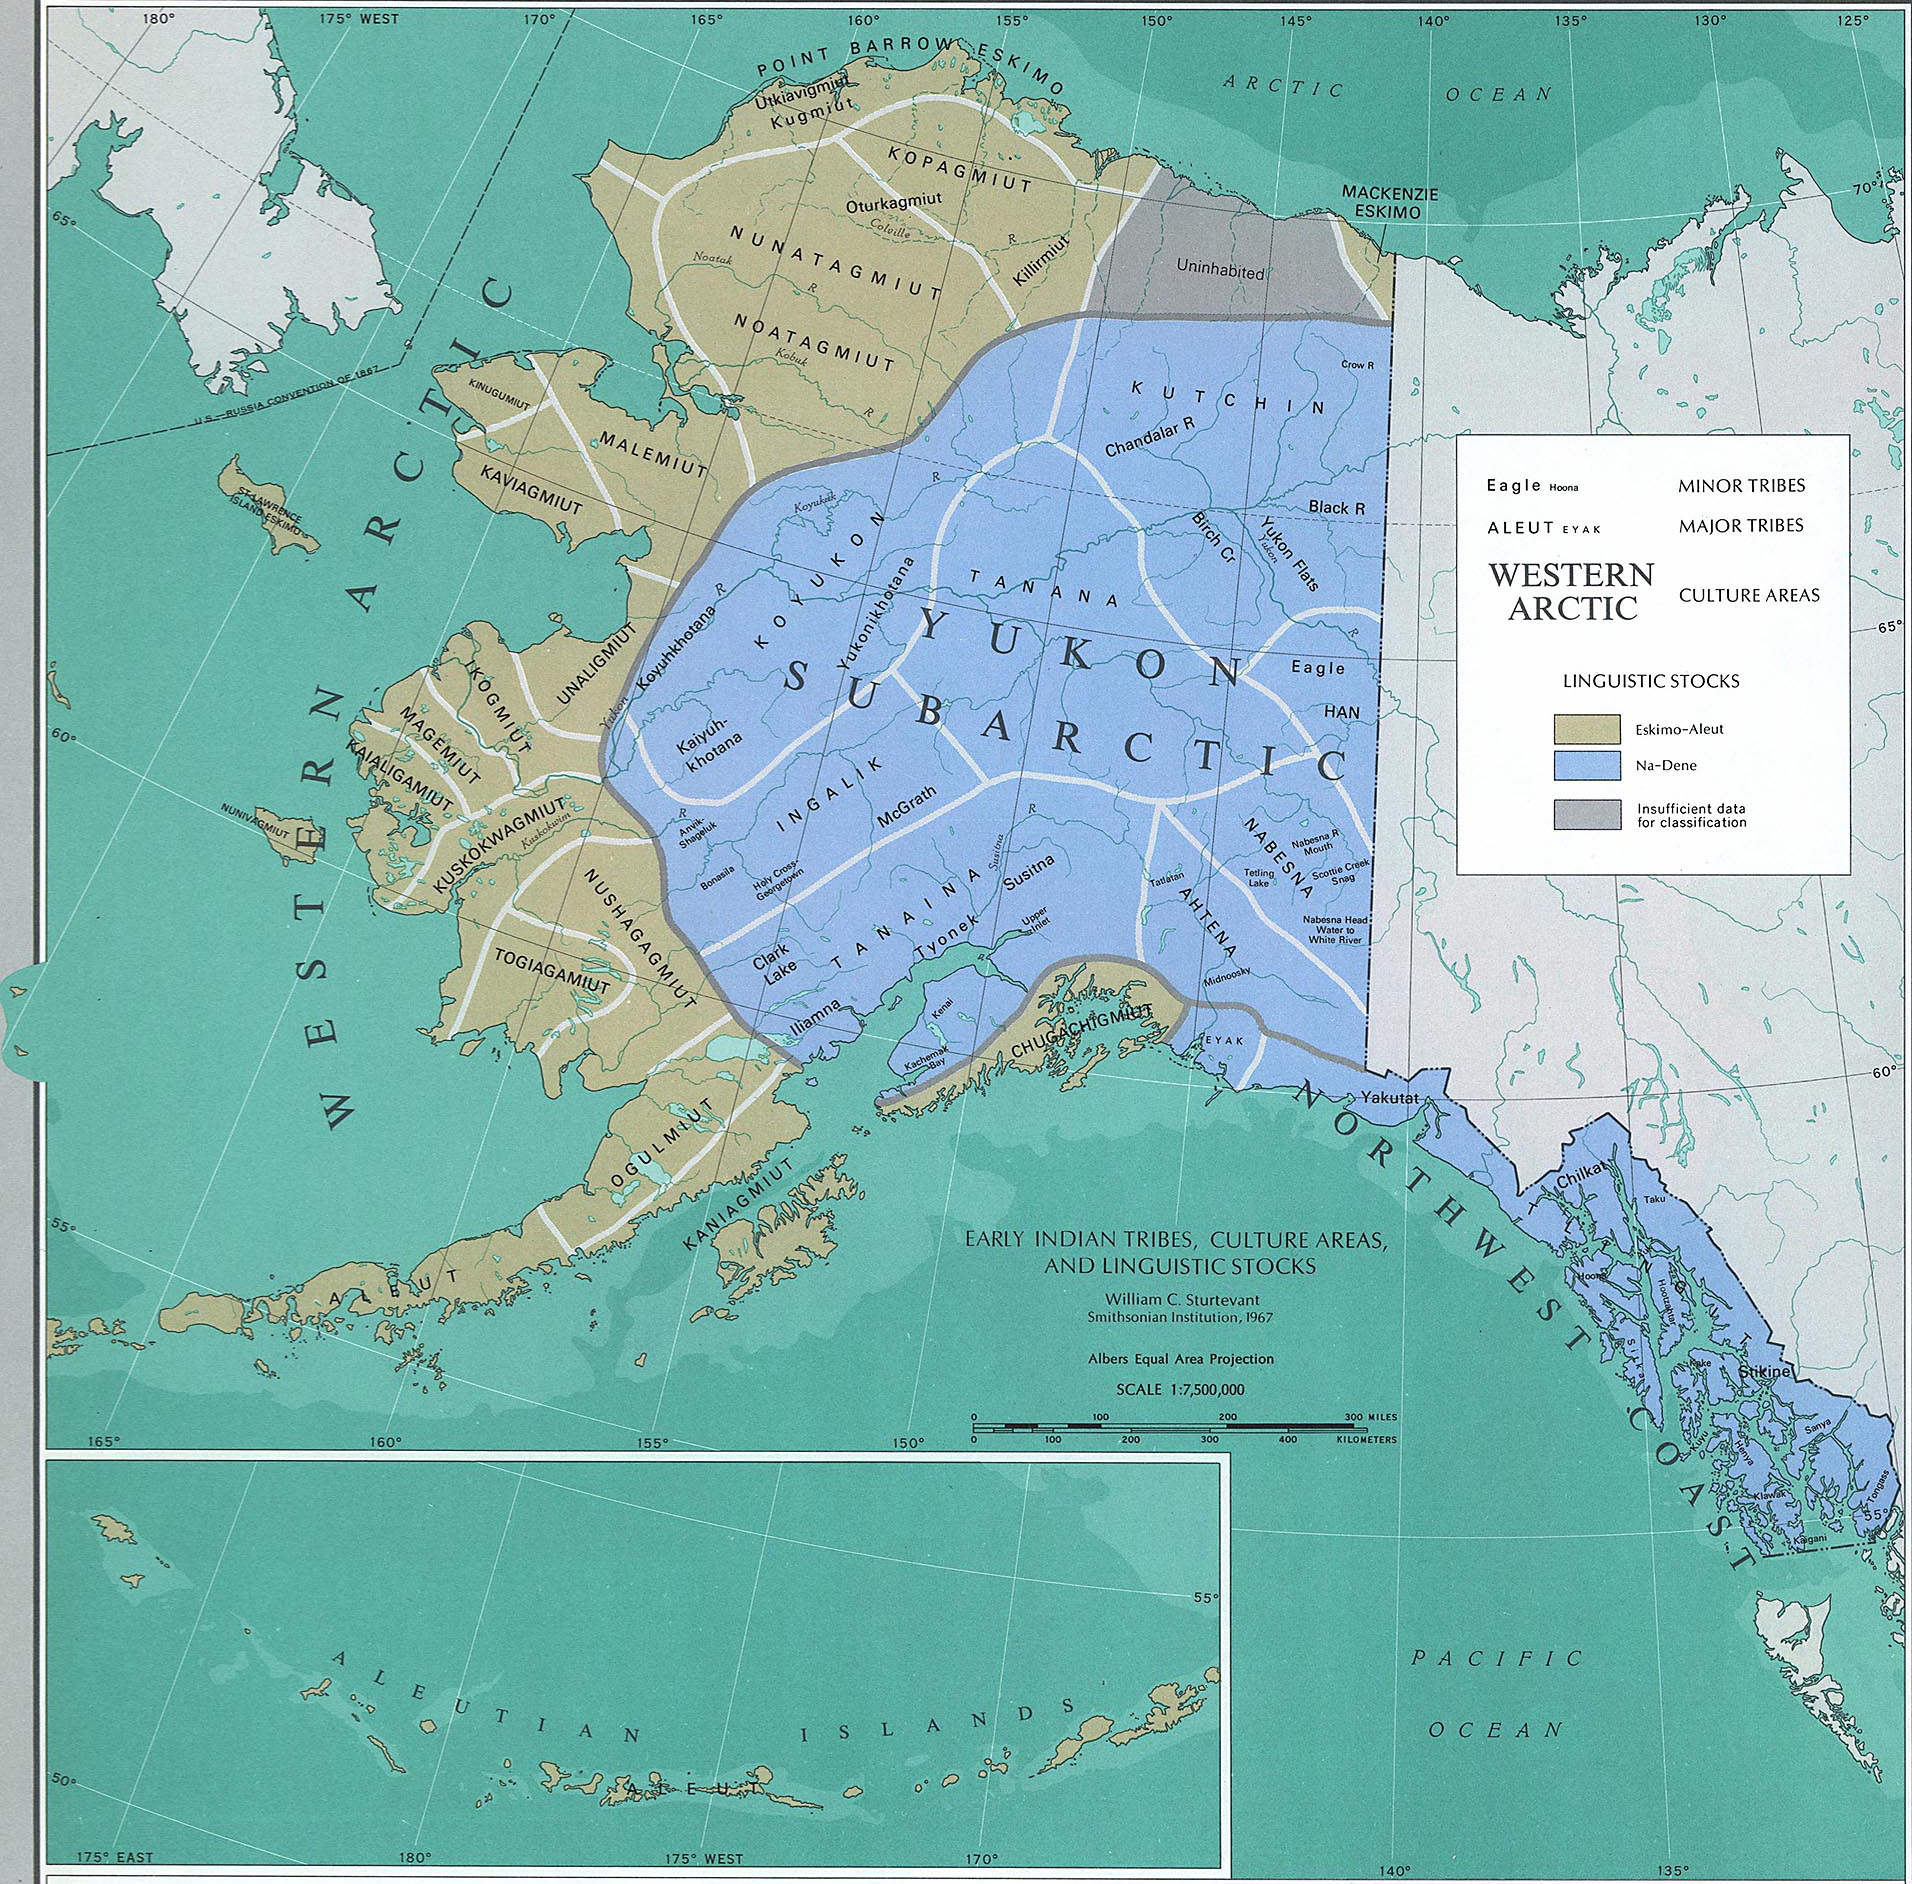 map of alaska early indian tribes culture areas and linguistic stocks